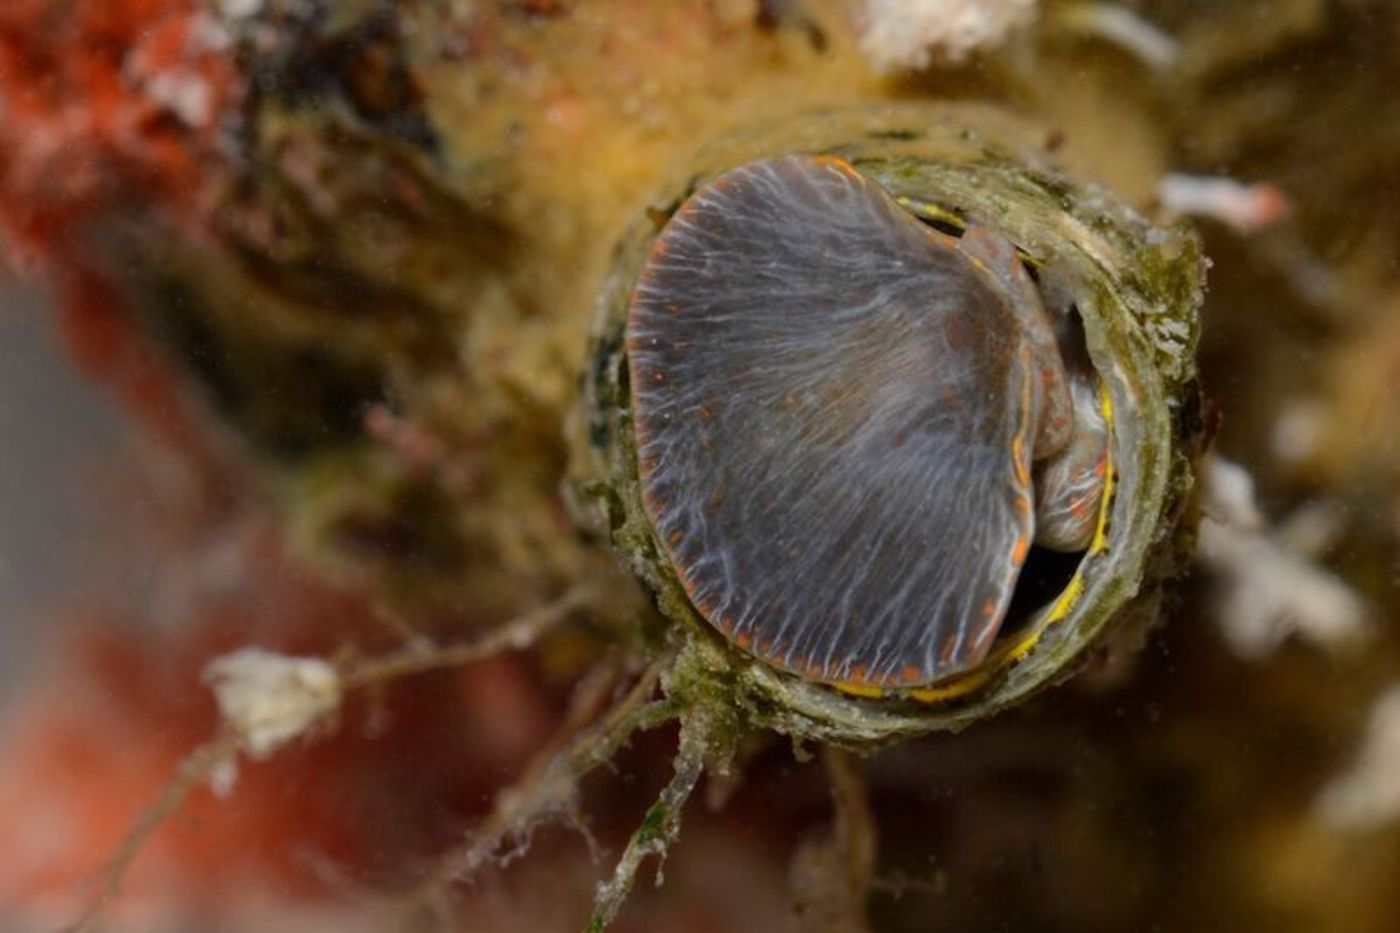 A red, orange, and brown coral-like tube with a soft, gray, clam-like flap at the top